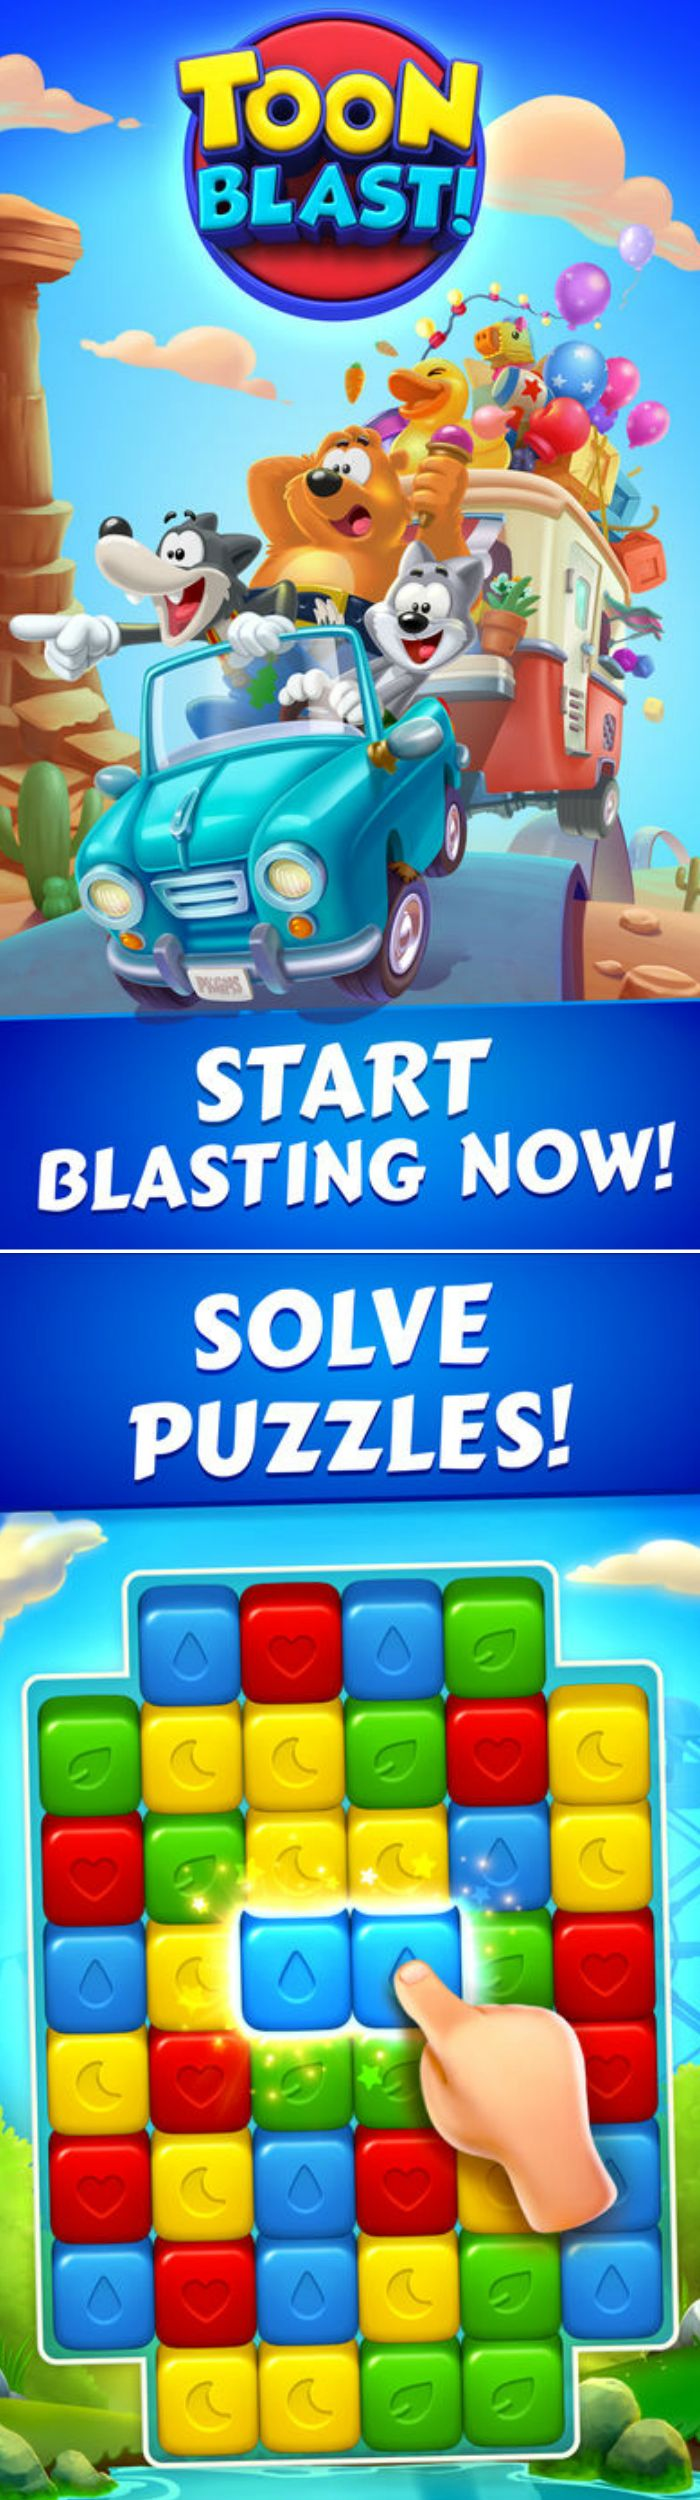 Game Review: Toon Blast